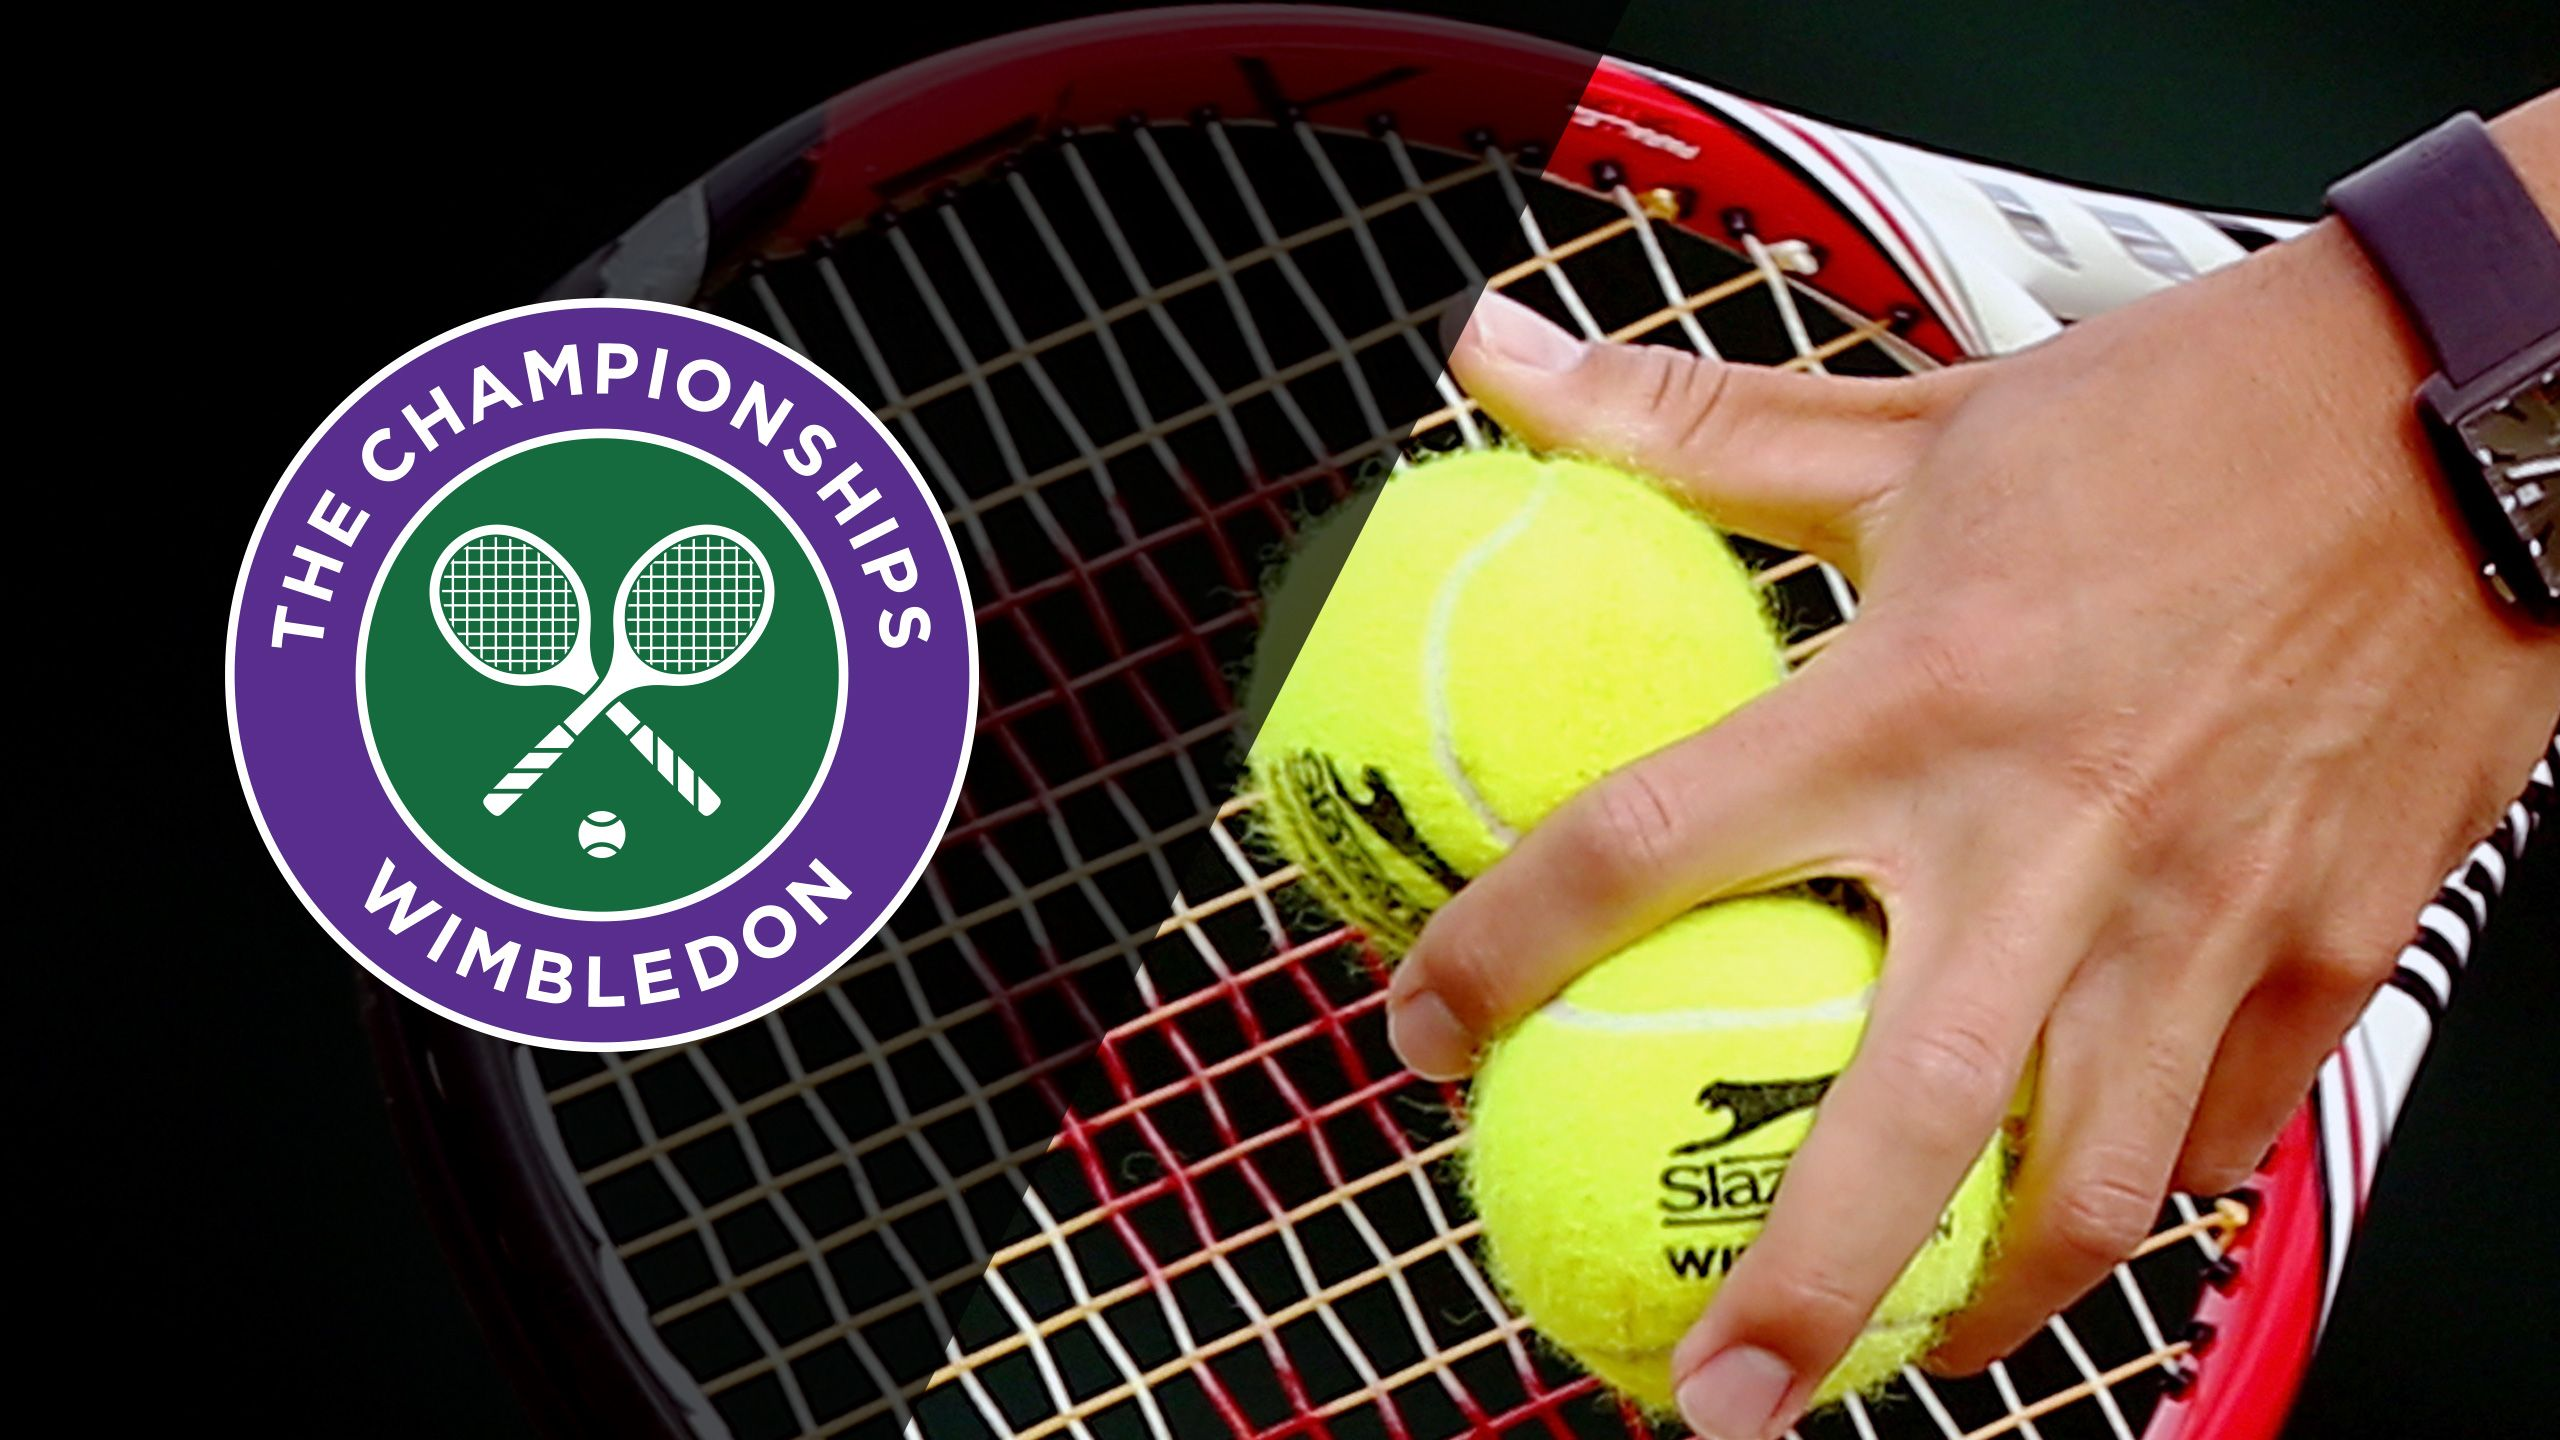 The Championships, Wimbledon 2018 (Ladies' Quarterfinals: No. 1 Court)